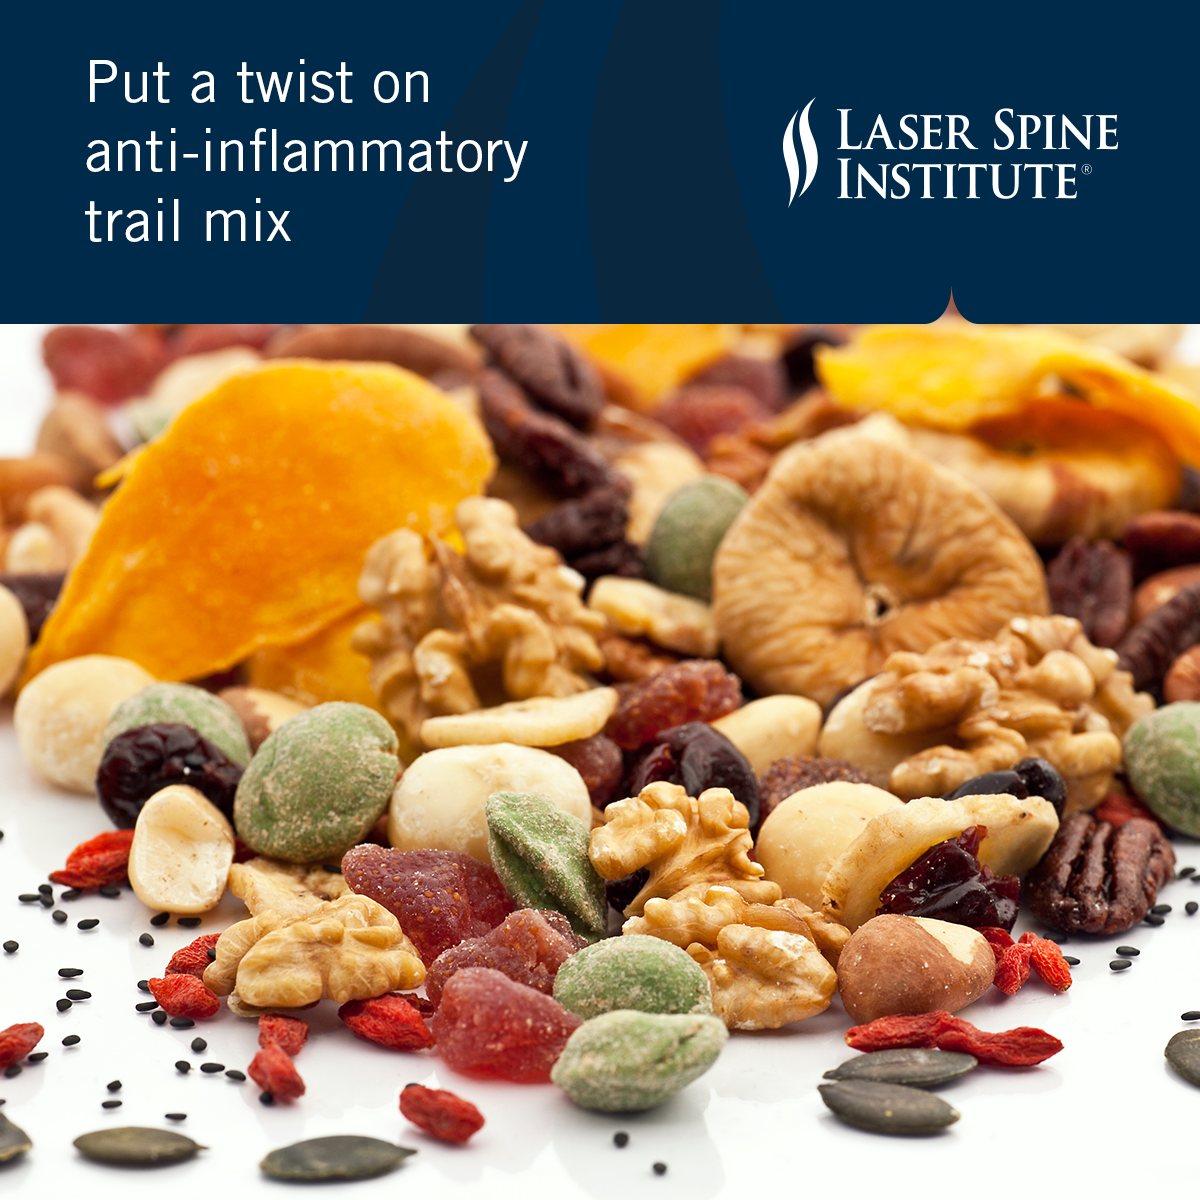 Anti-inflammatory trail mix